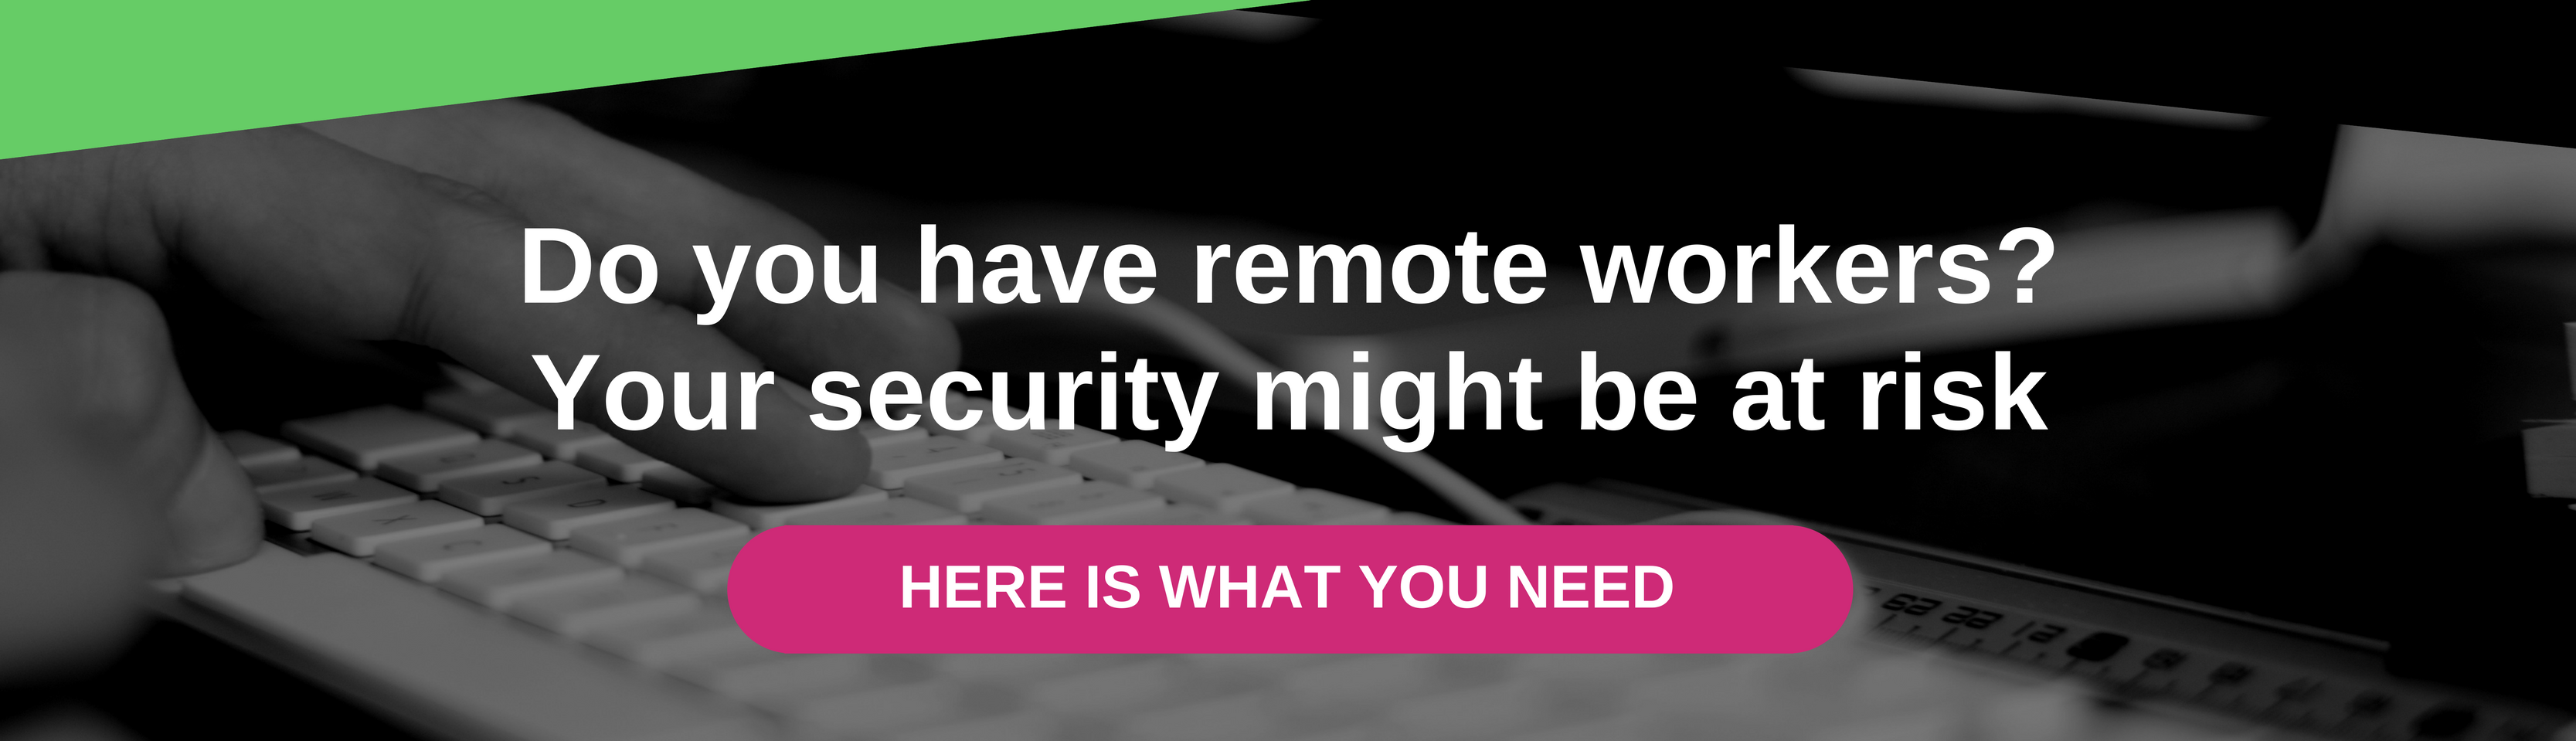 Do you have remote workers? Your company might be at risk - Here is what you need